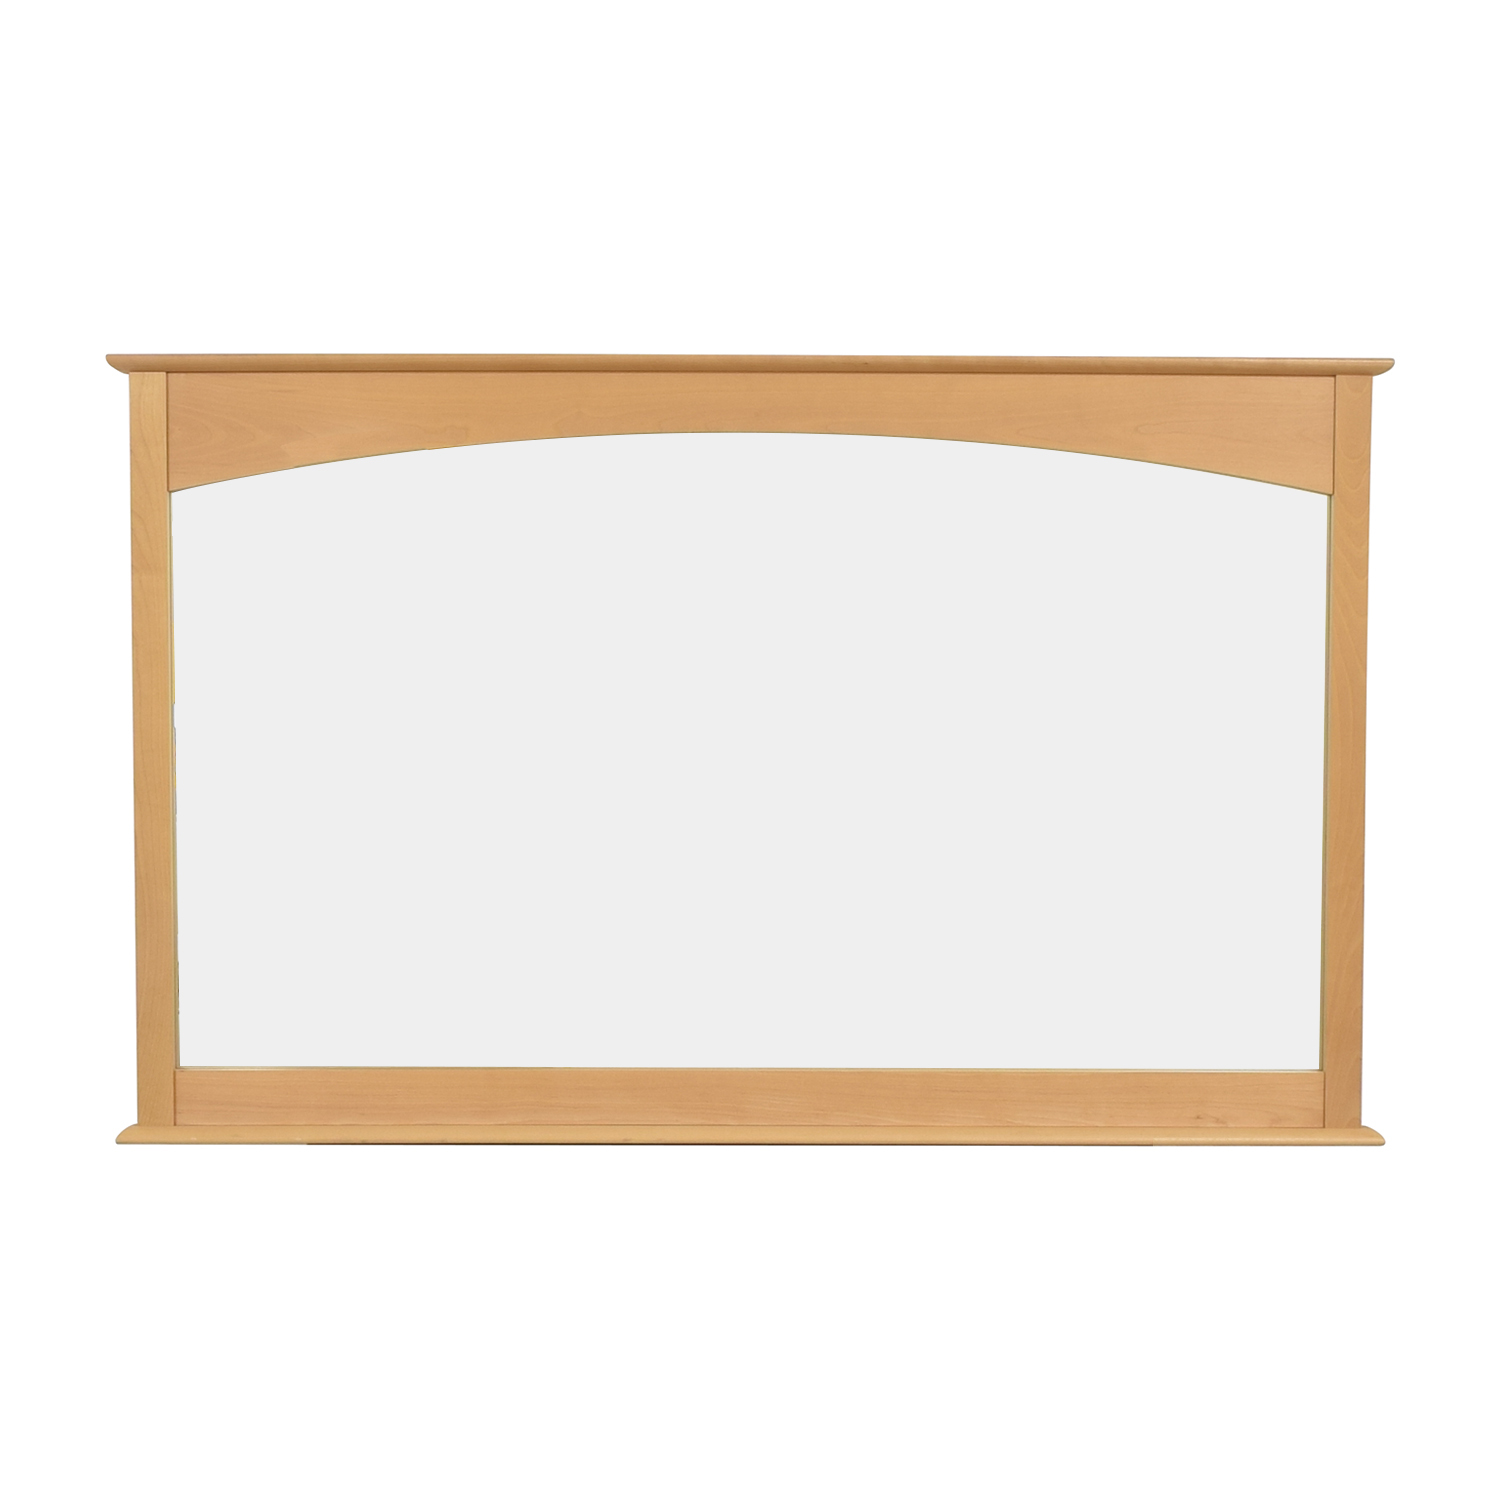 Lee Industries Lee Industries Rectangular Mirror brown